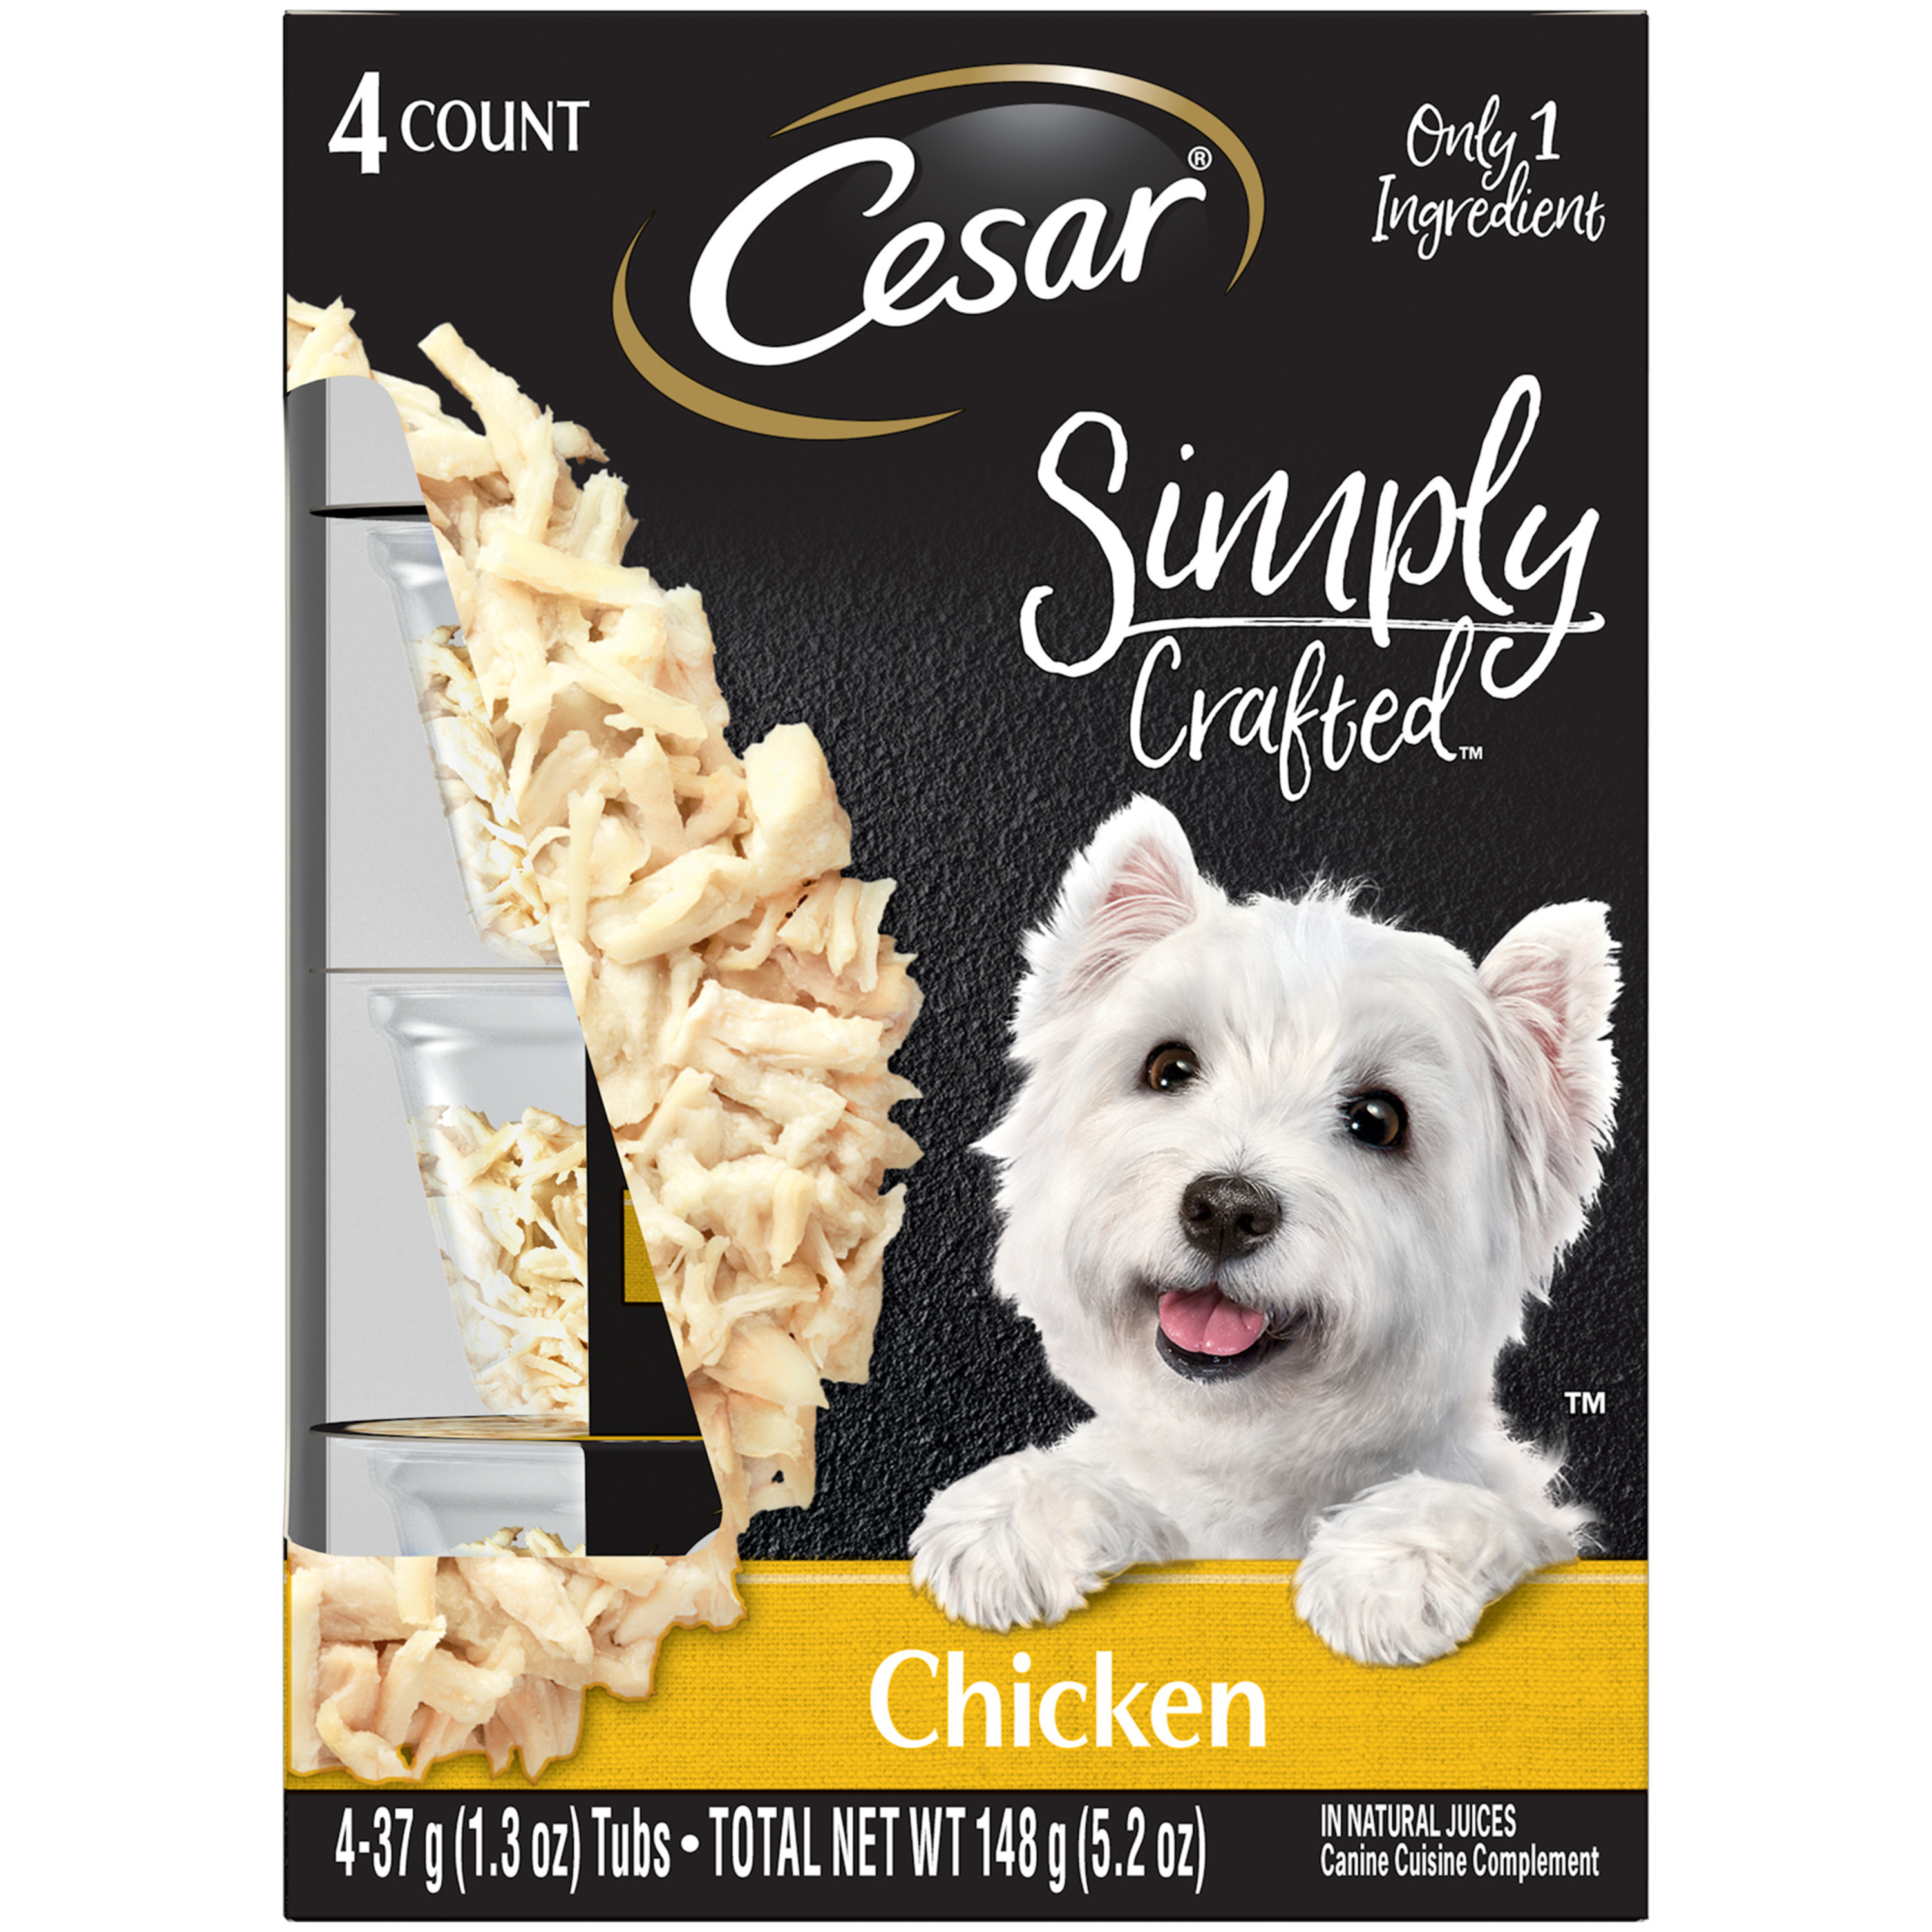 CESAR SIMPLY CRAFTED Adult Wet Dog Food Cuisine Complement, Chicken, (4) 1.3 oz. Tub